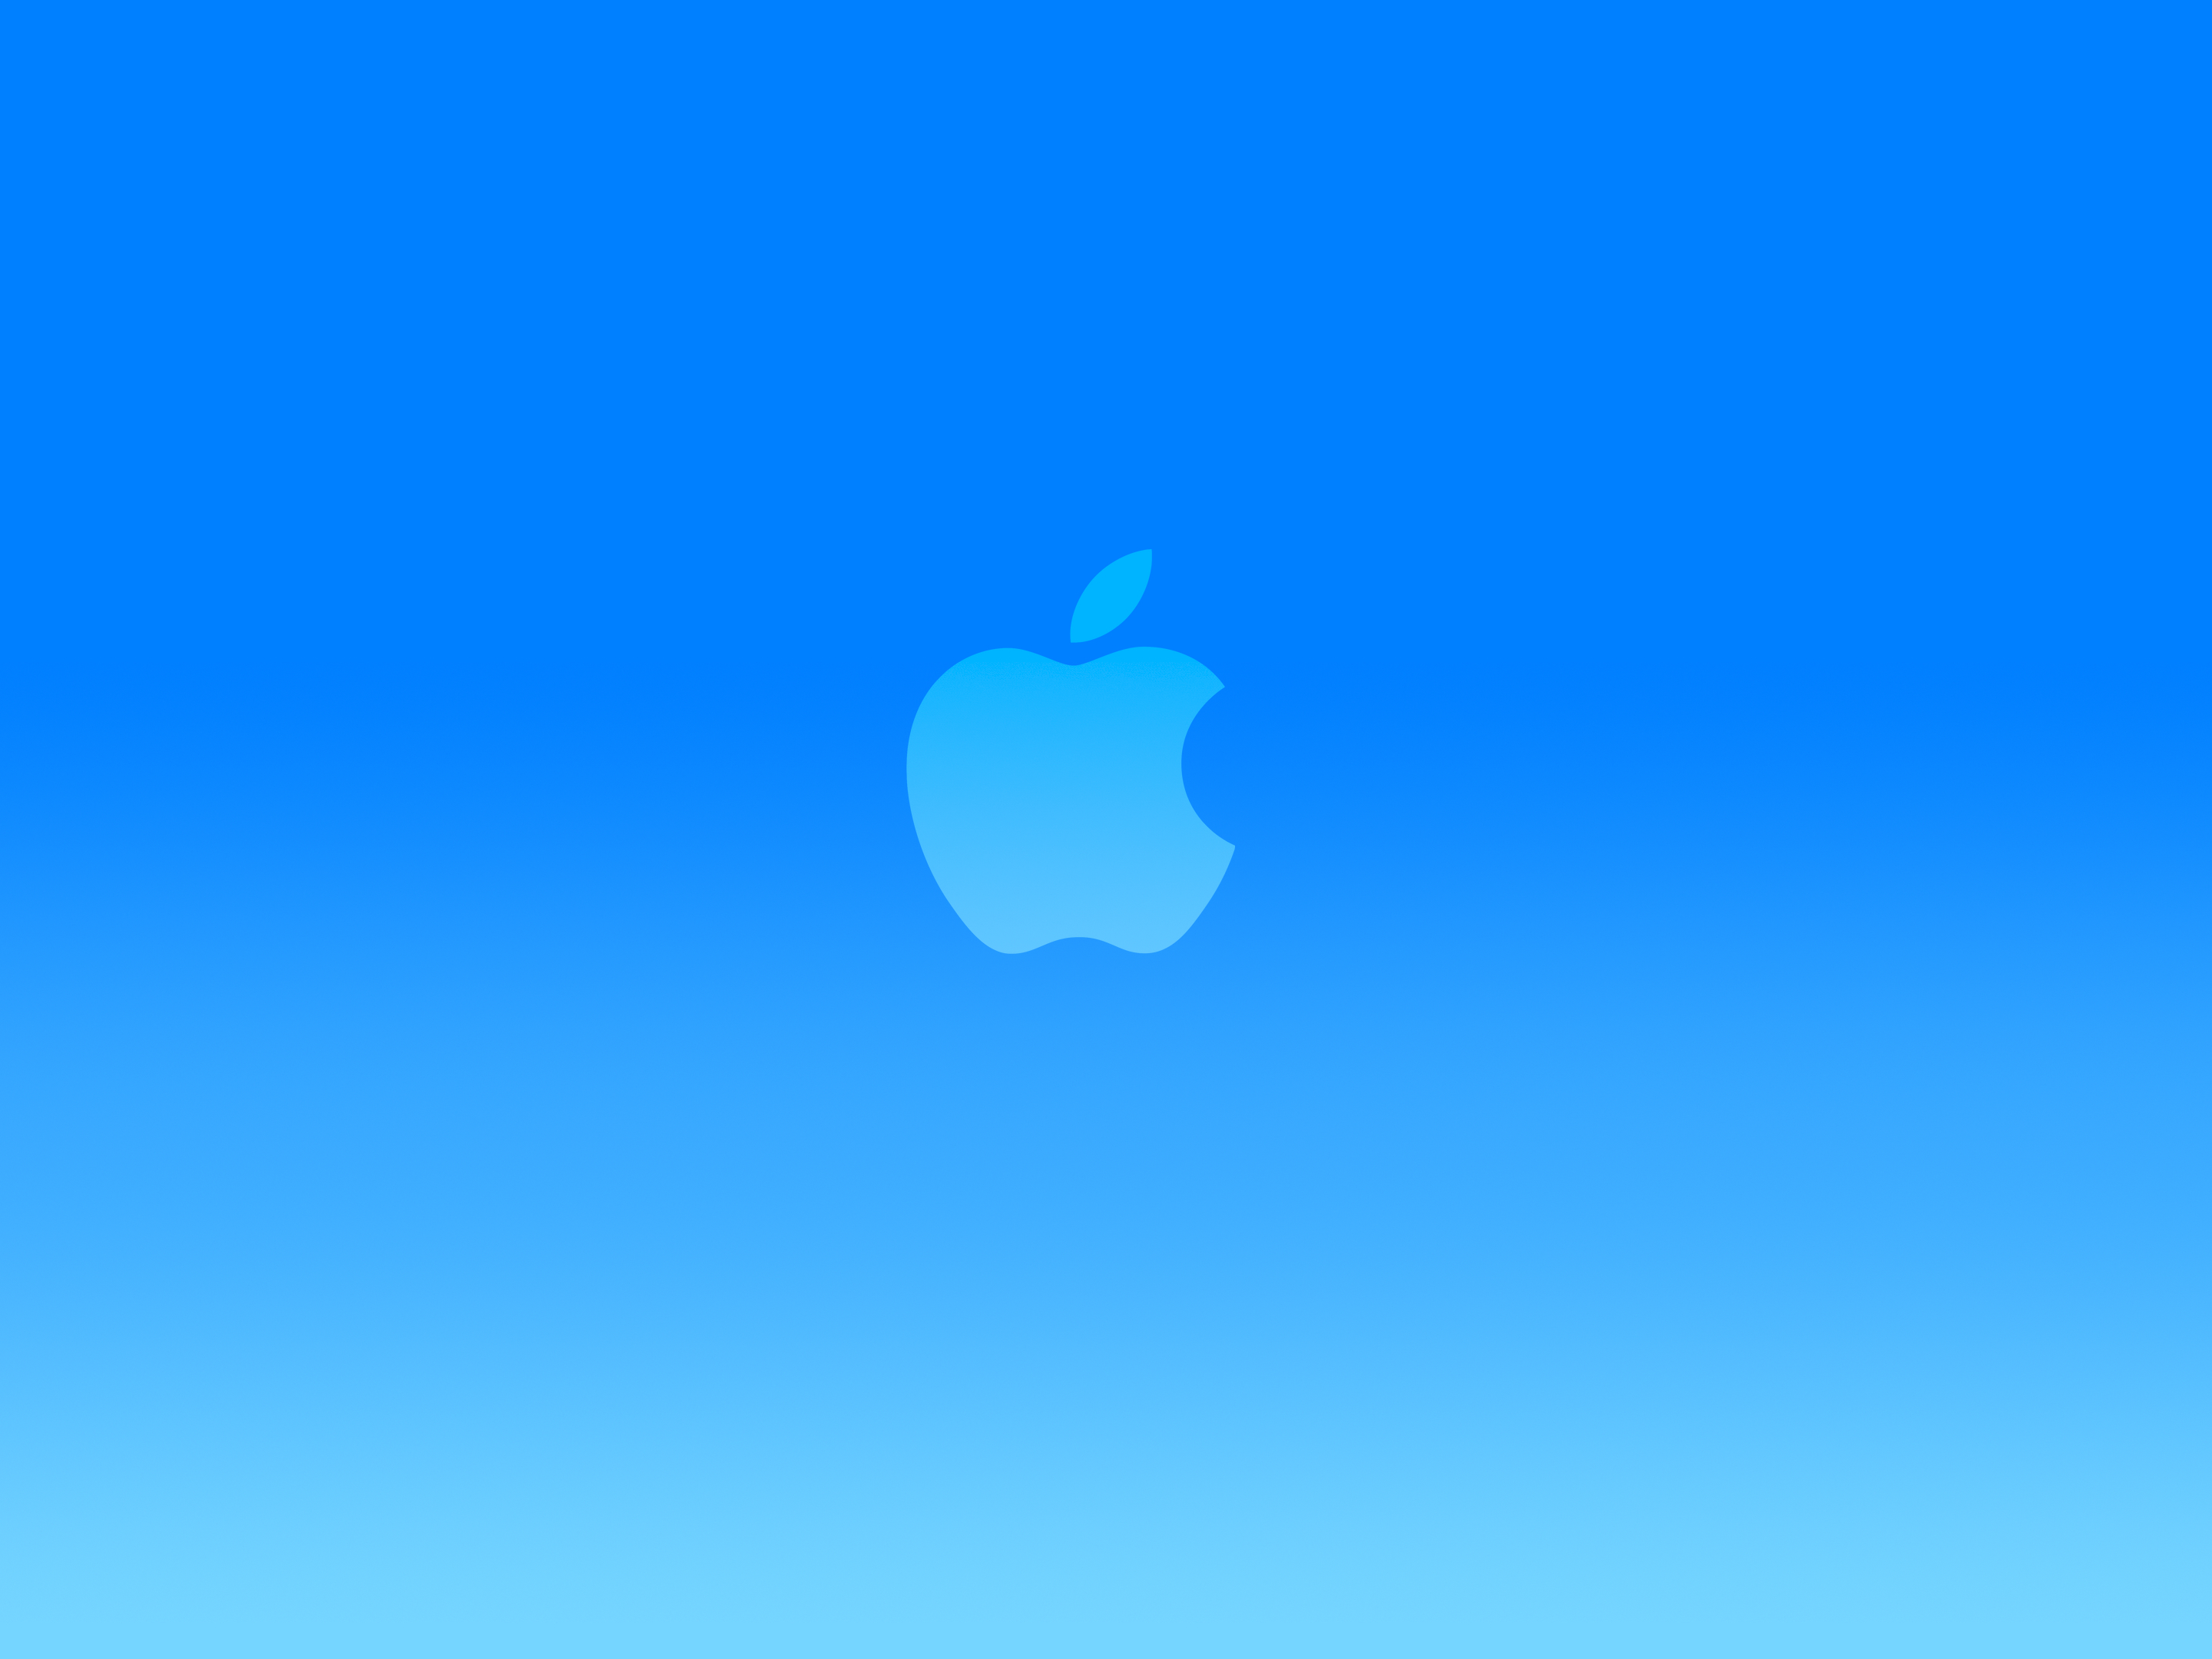 20 Excellent Apple Logo Wallpapers Osxdaily